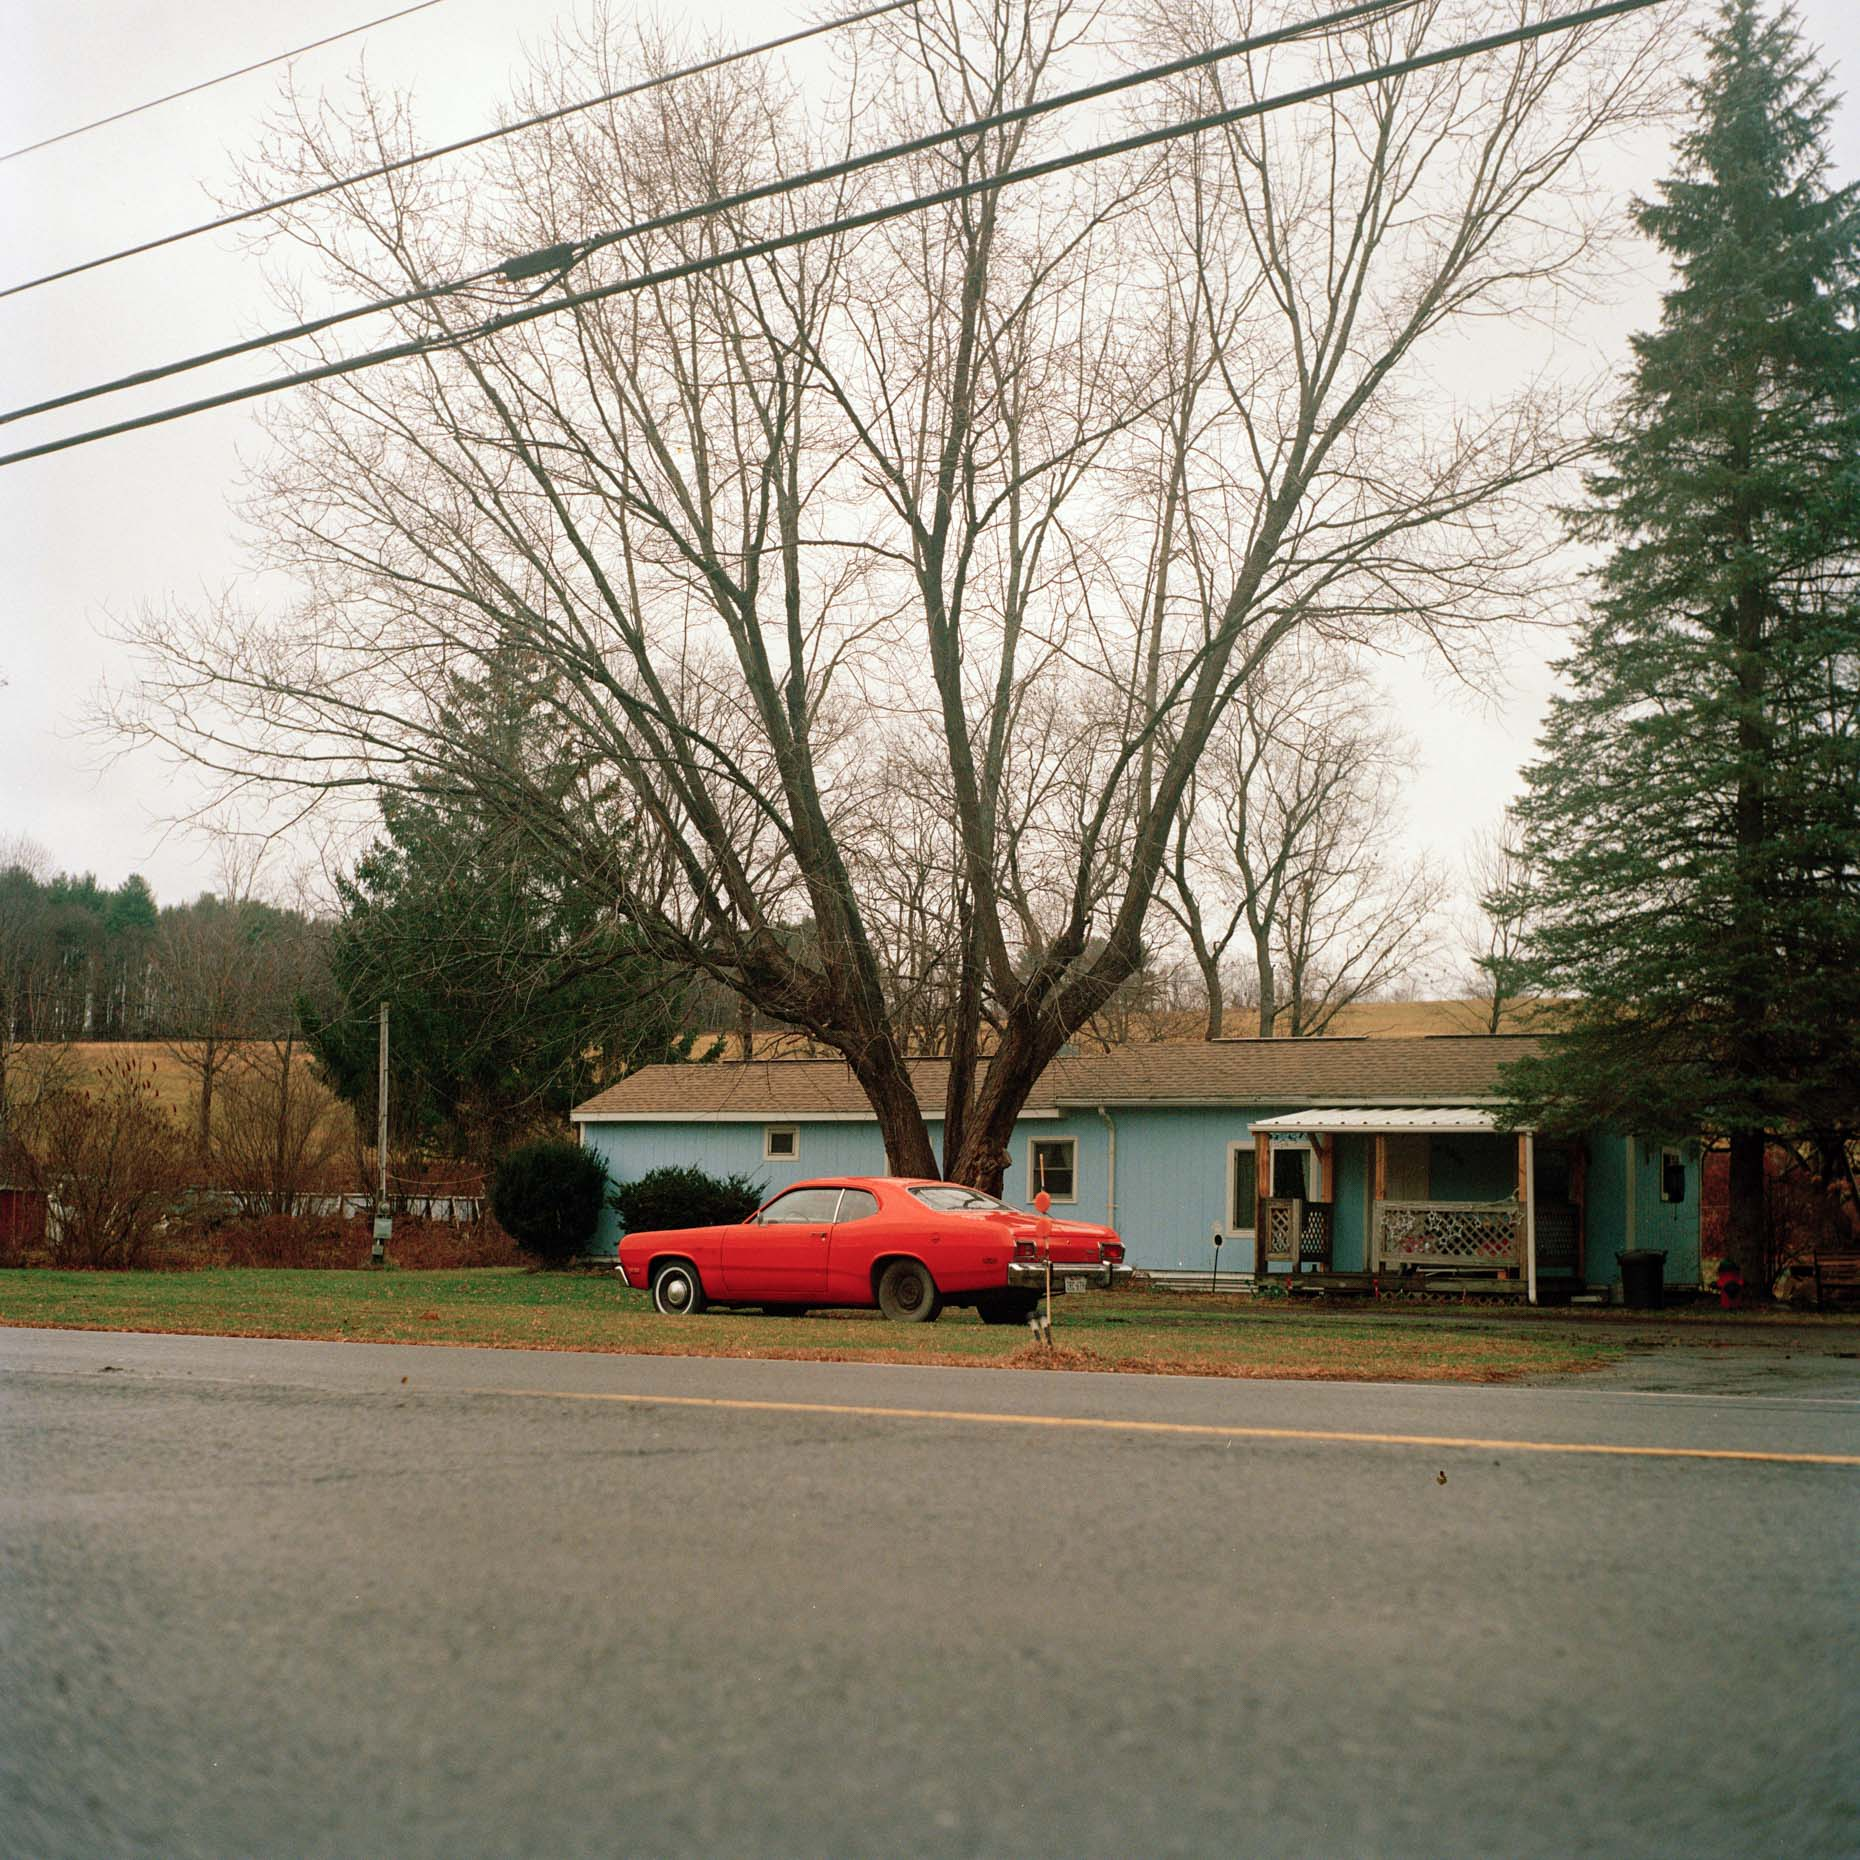 A vintage car sits in the front yard in upstate New York